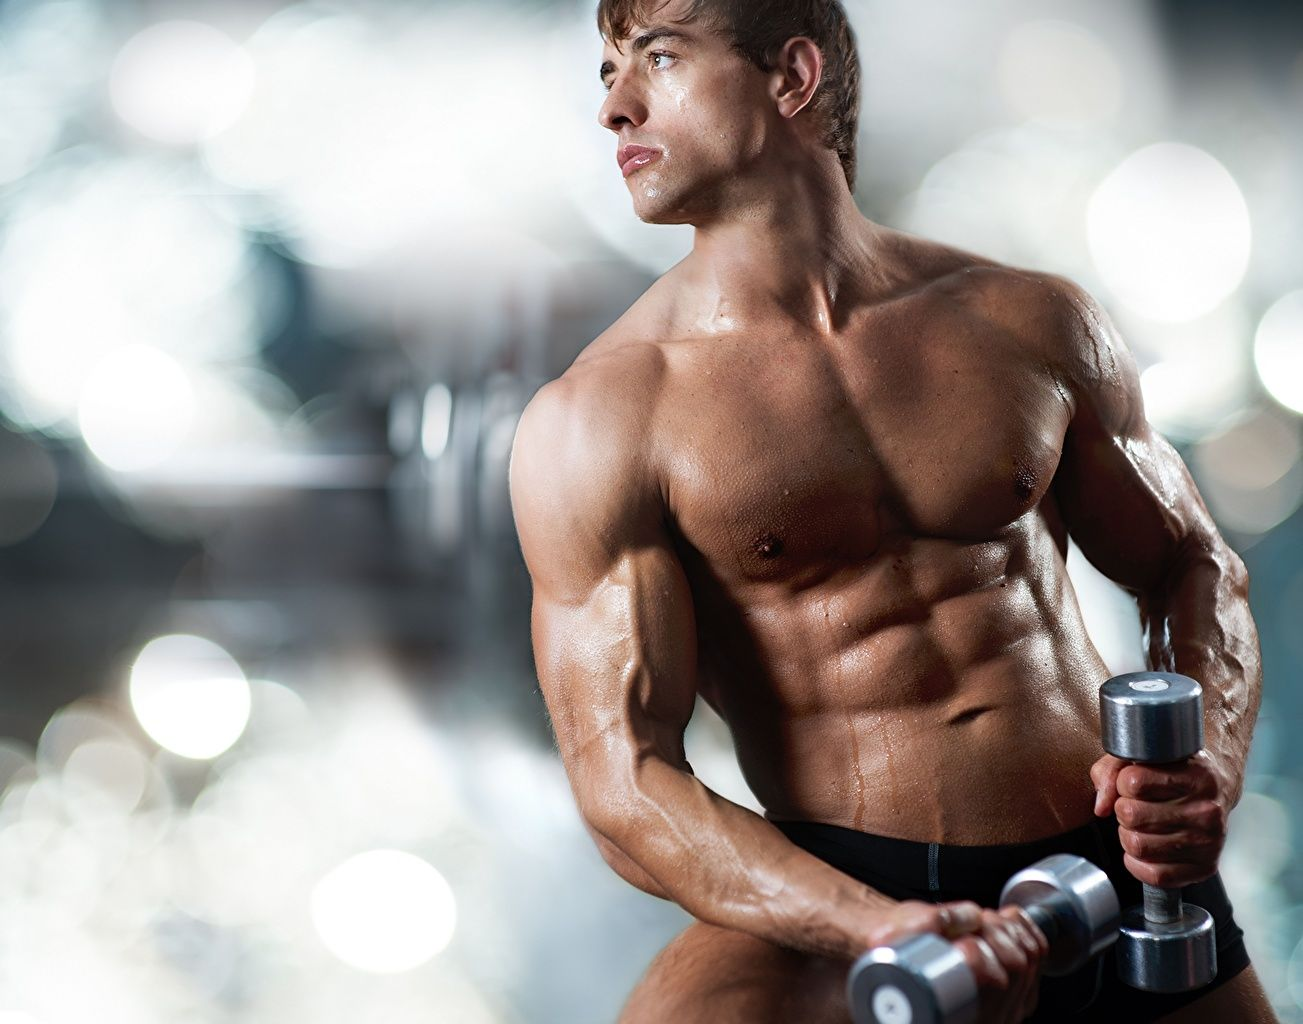 Wallpapers Sport Men Muscle Fitness Beautiful Dumbbells Bodybuilding